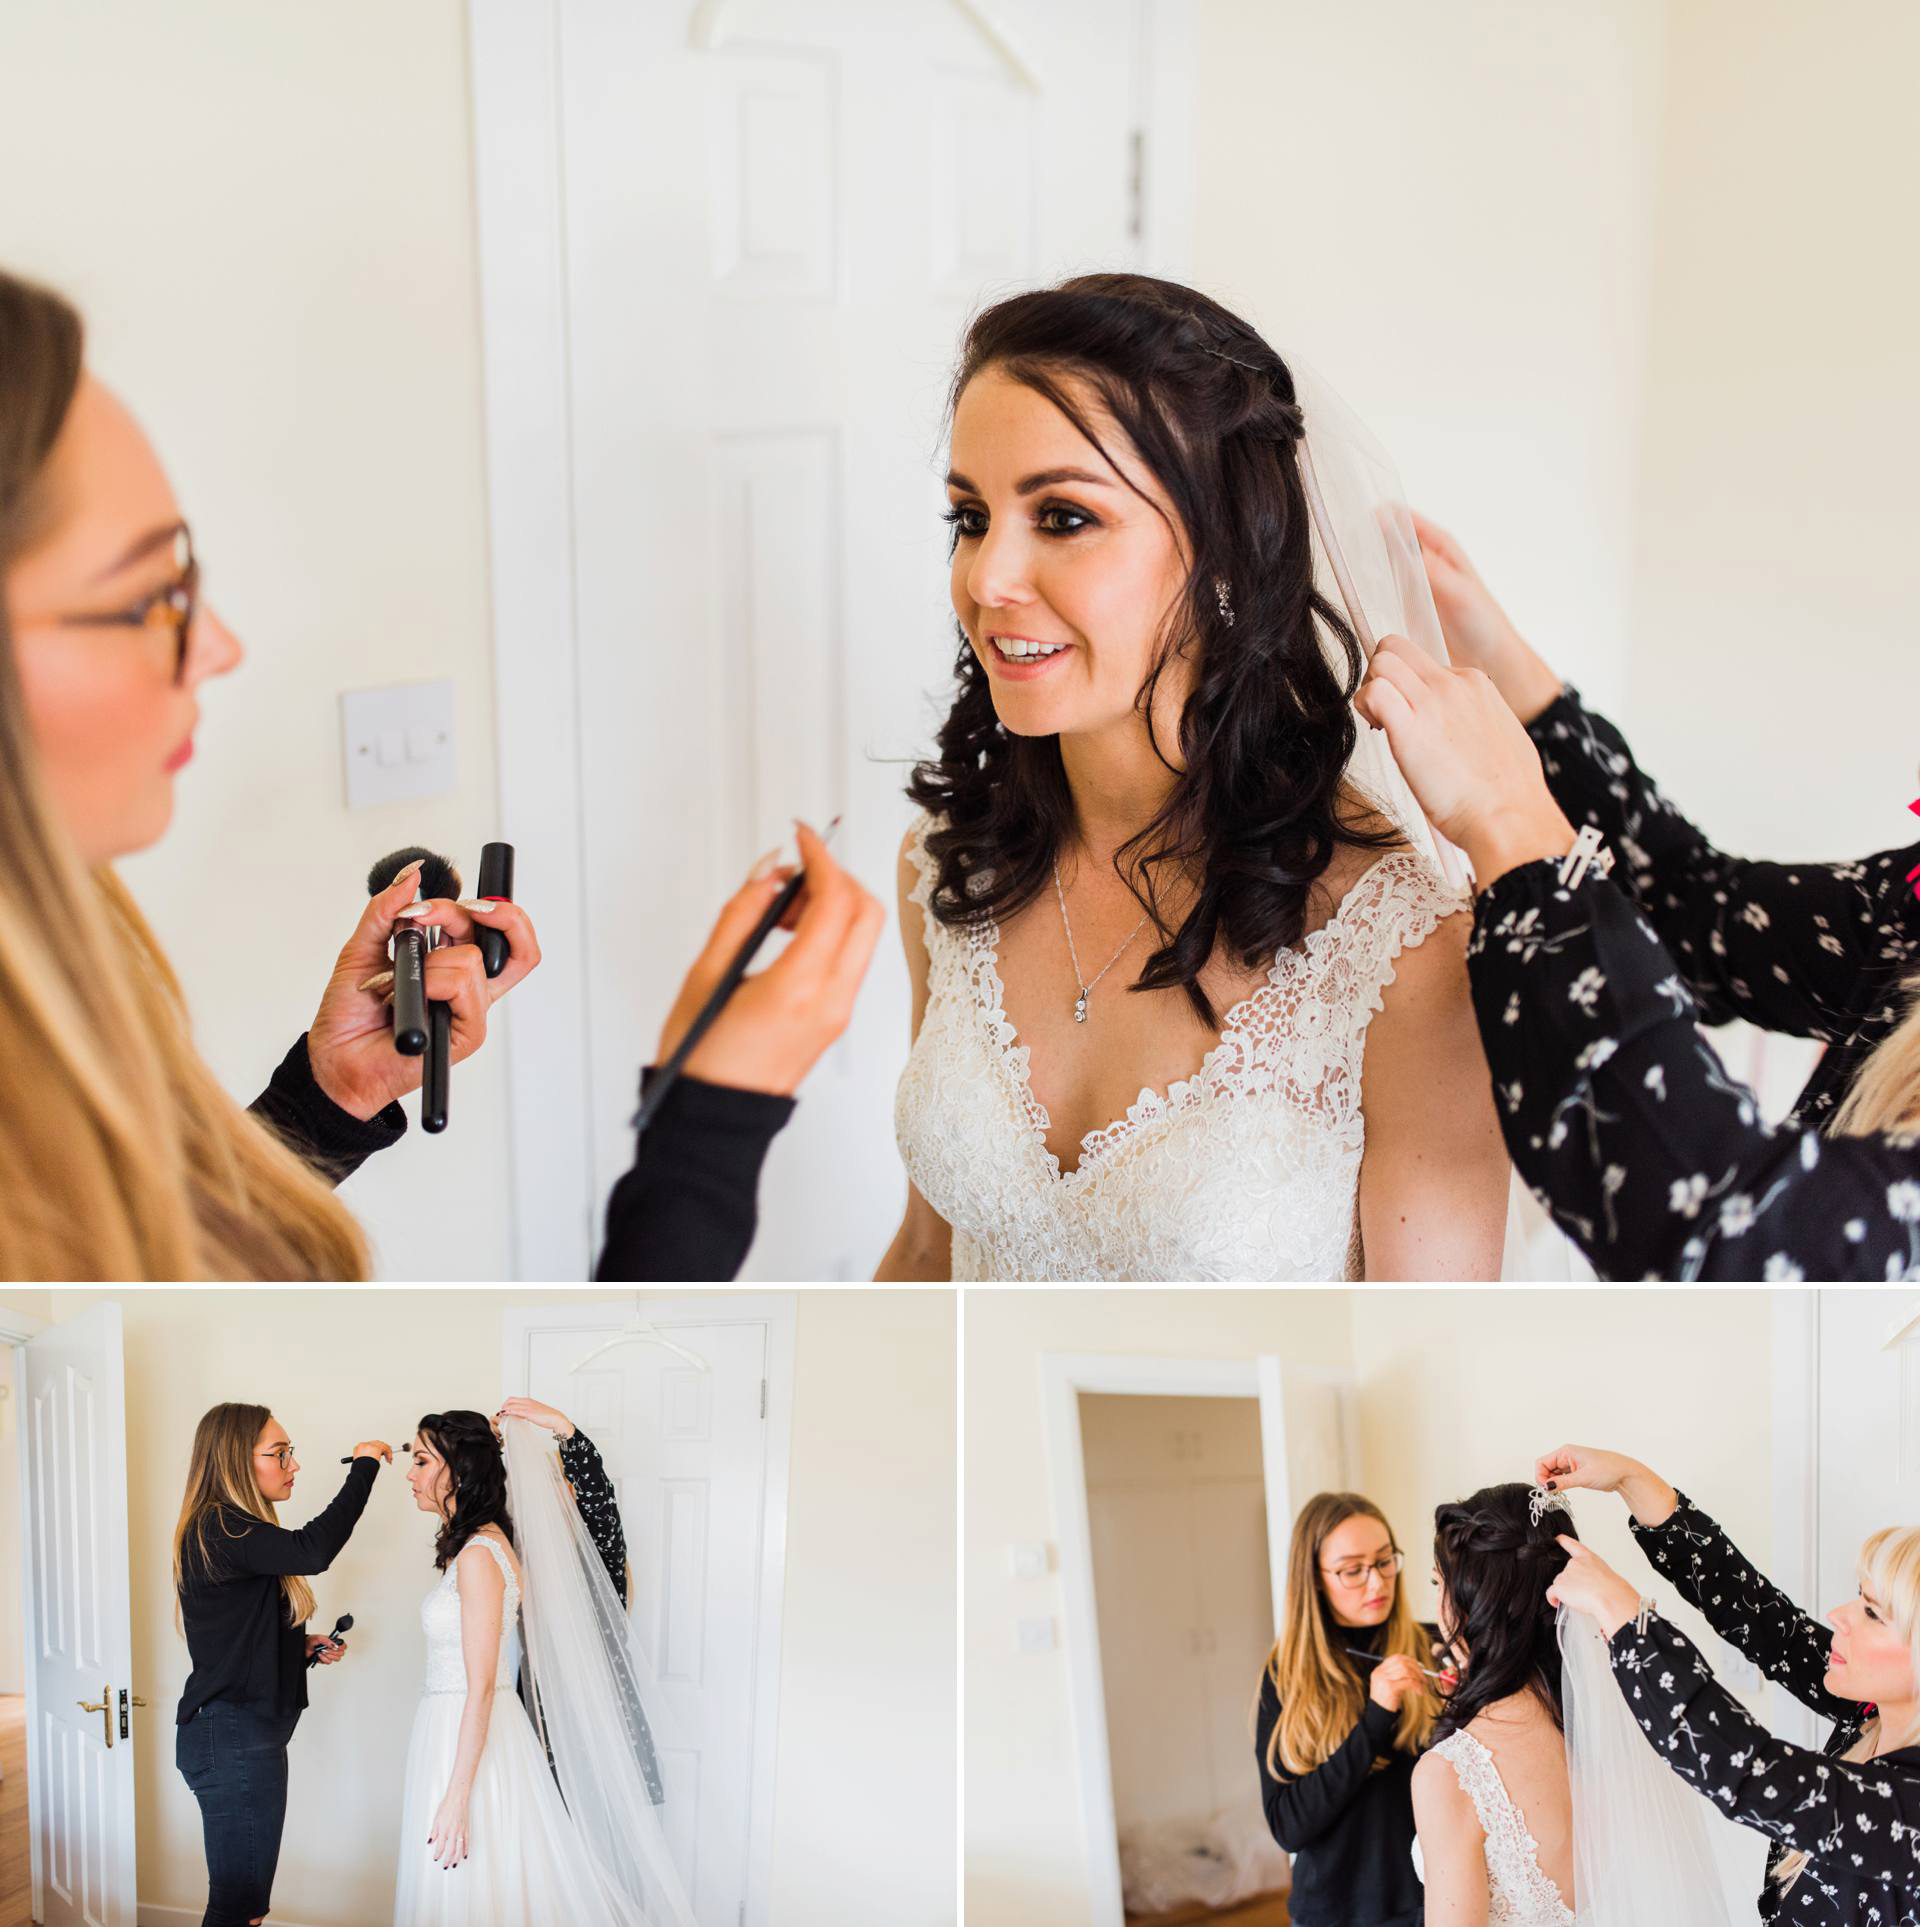 Irish Wedding Photographer Kathy Silke Photography documents bride getting ready for her wedding